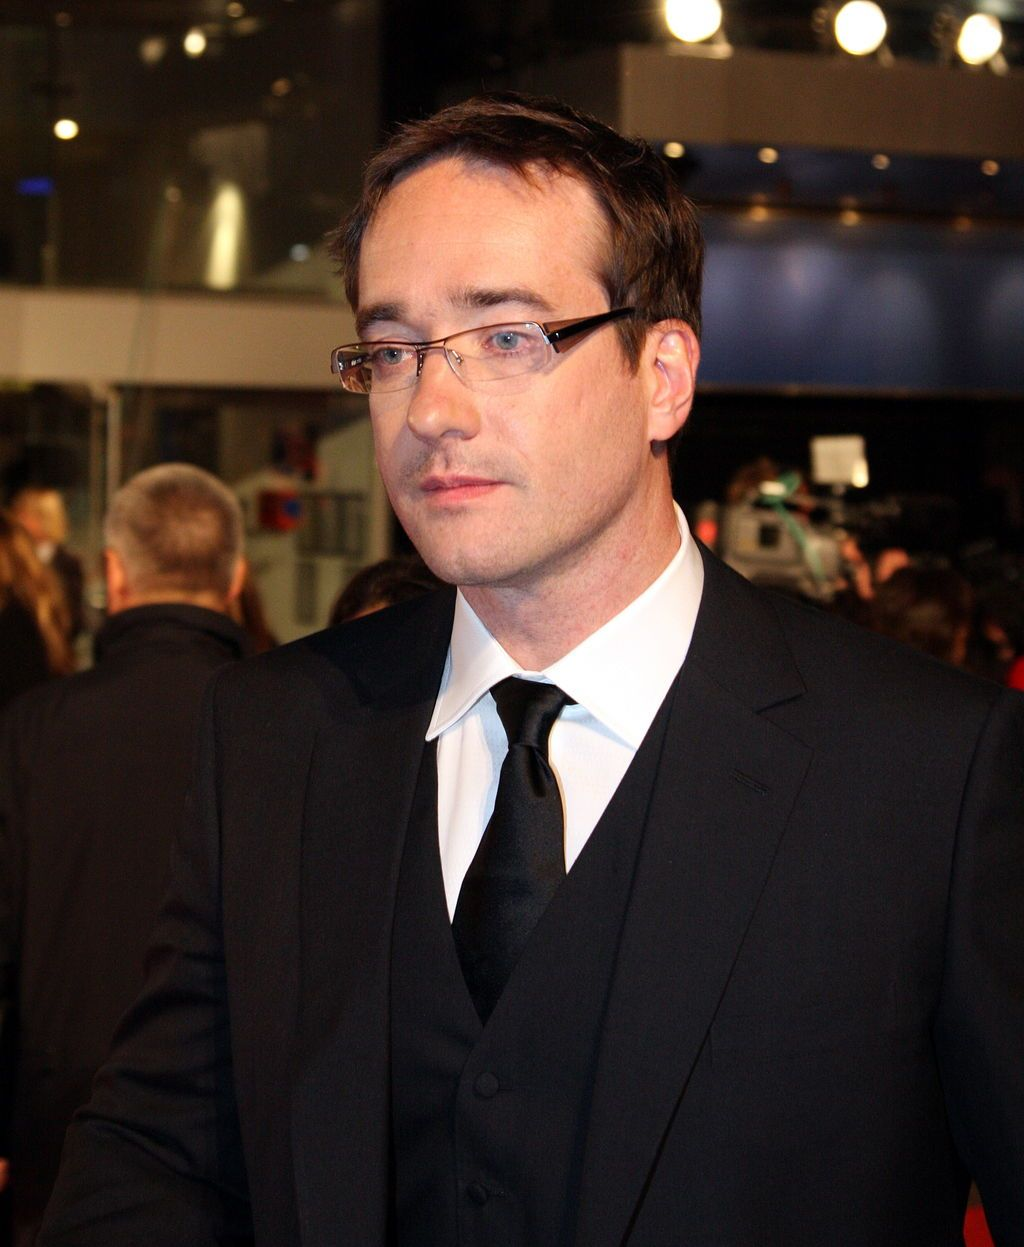 Discussion on this topic: Yoko Kumada (b. 1982), matthew-macfadyen-born-1974/